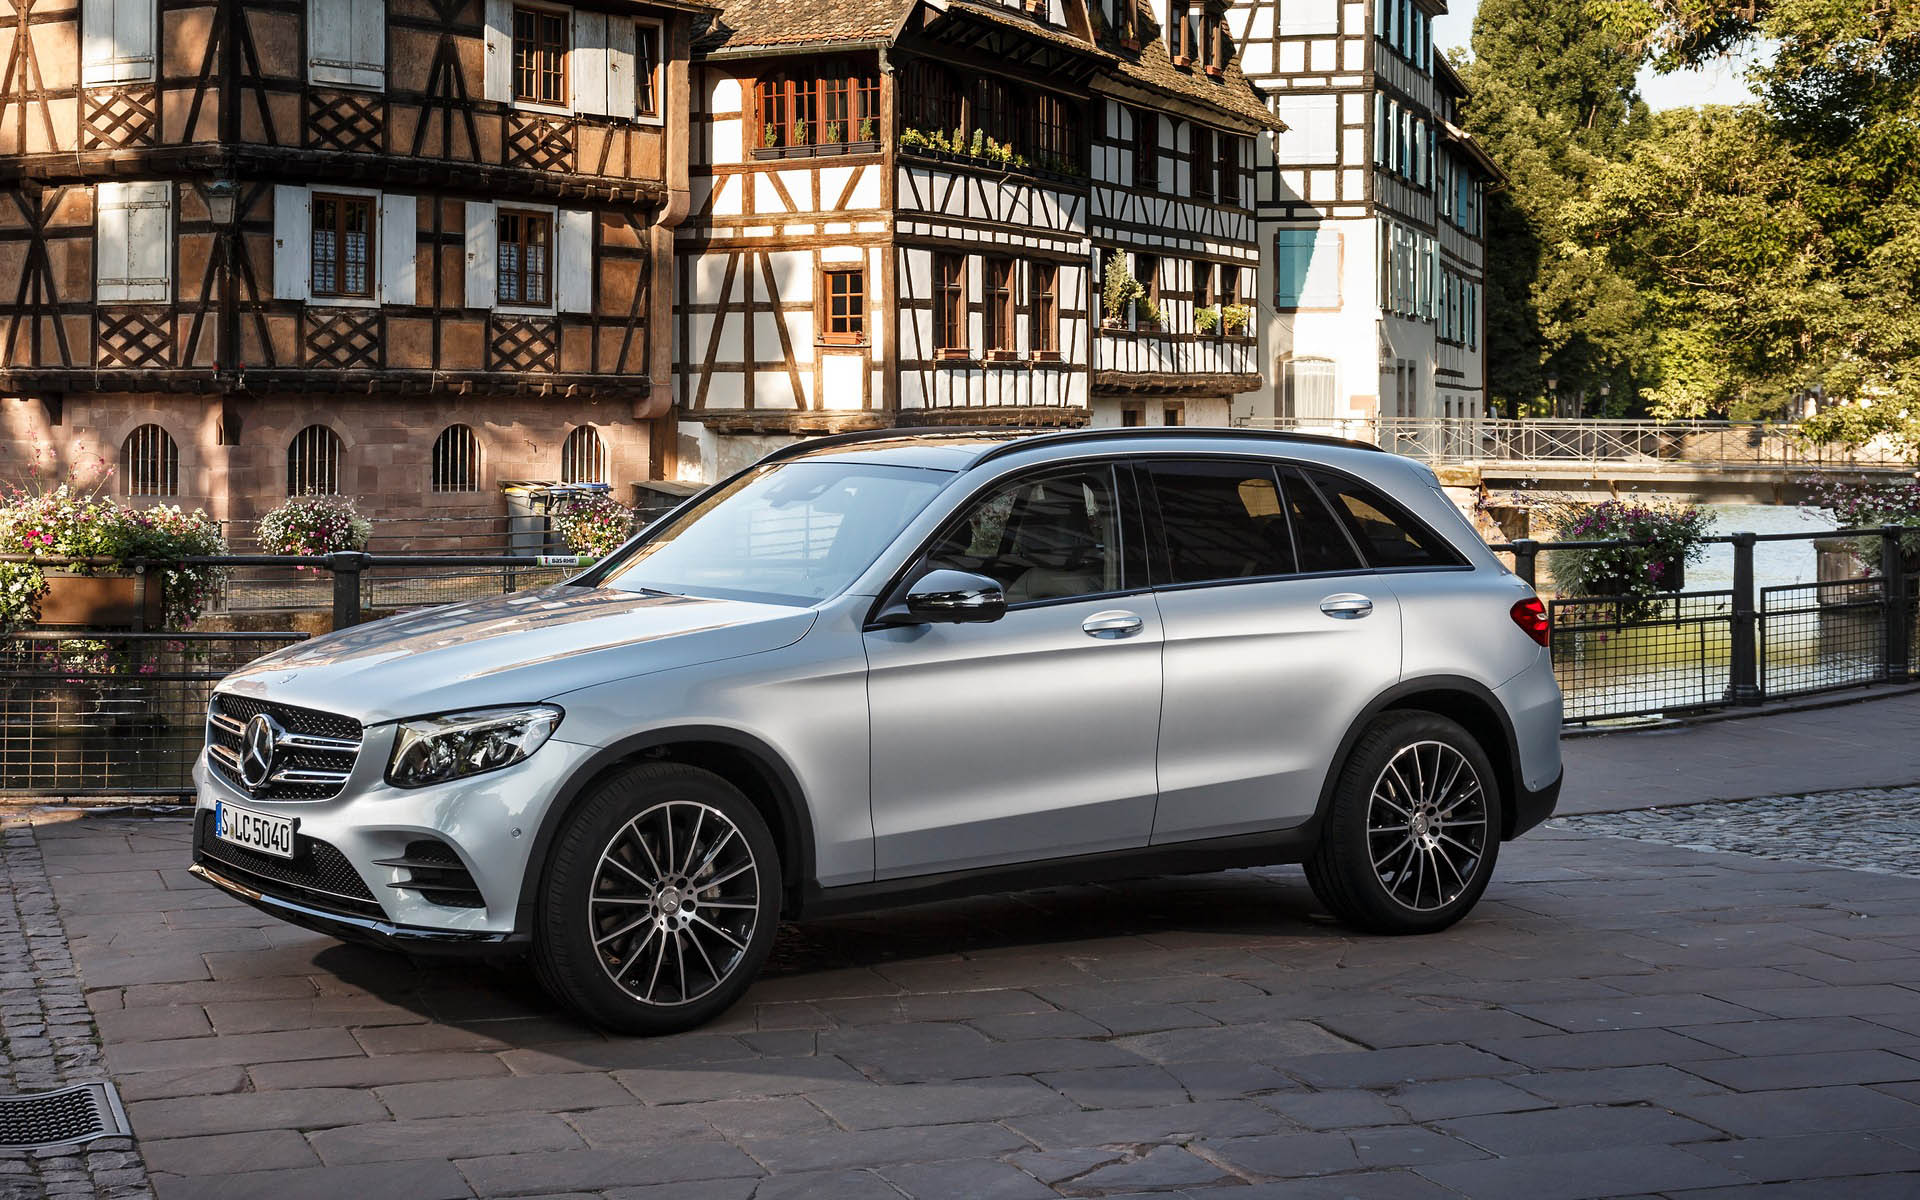 Mercedes-Benz GLC 2016 — фотогалерея